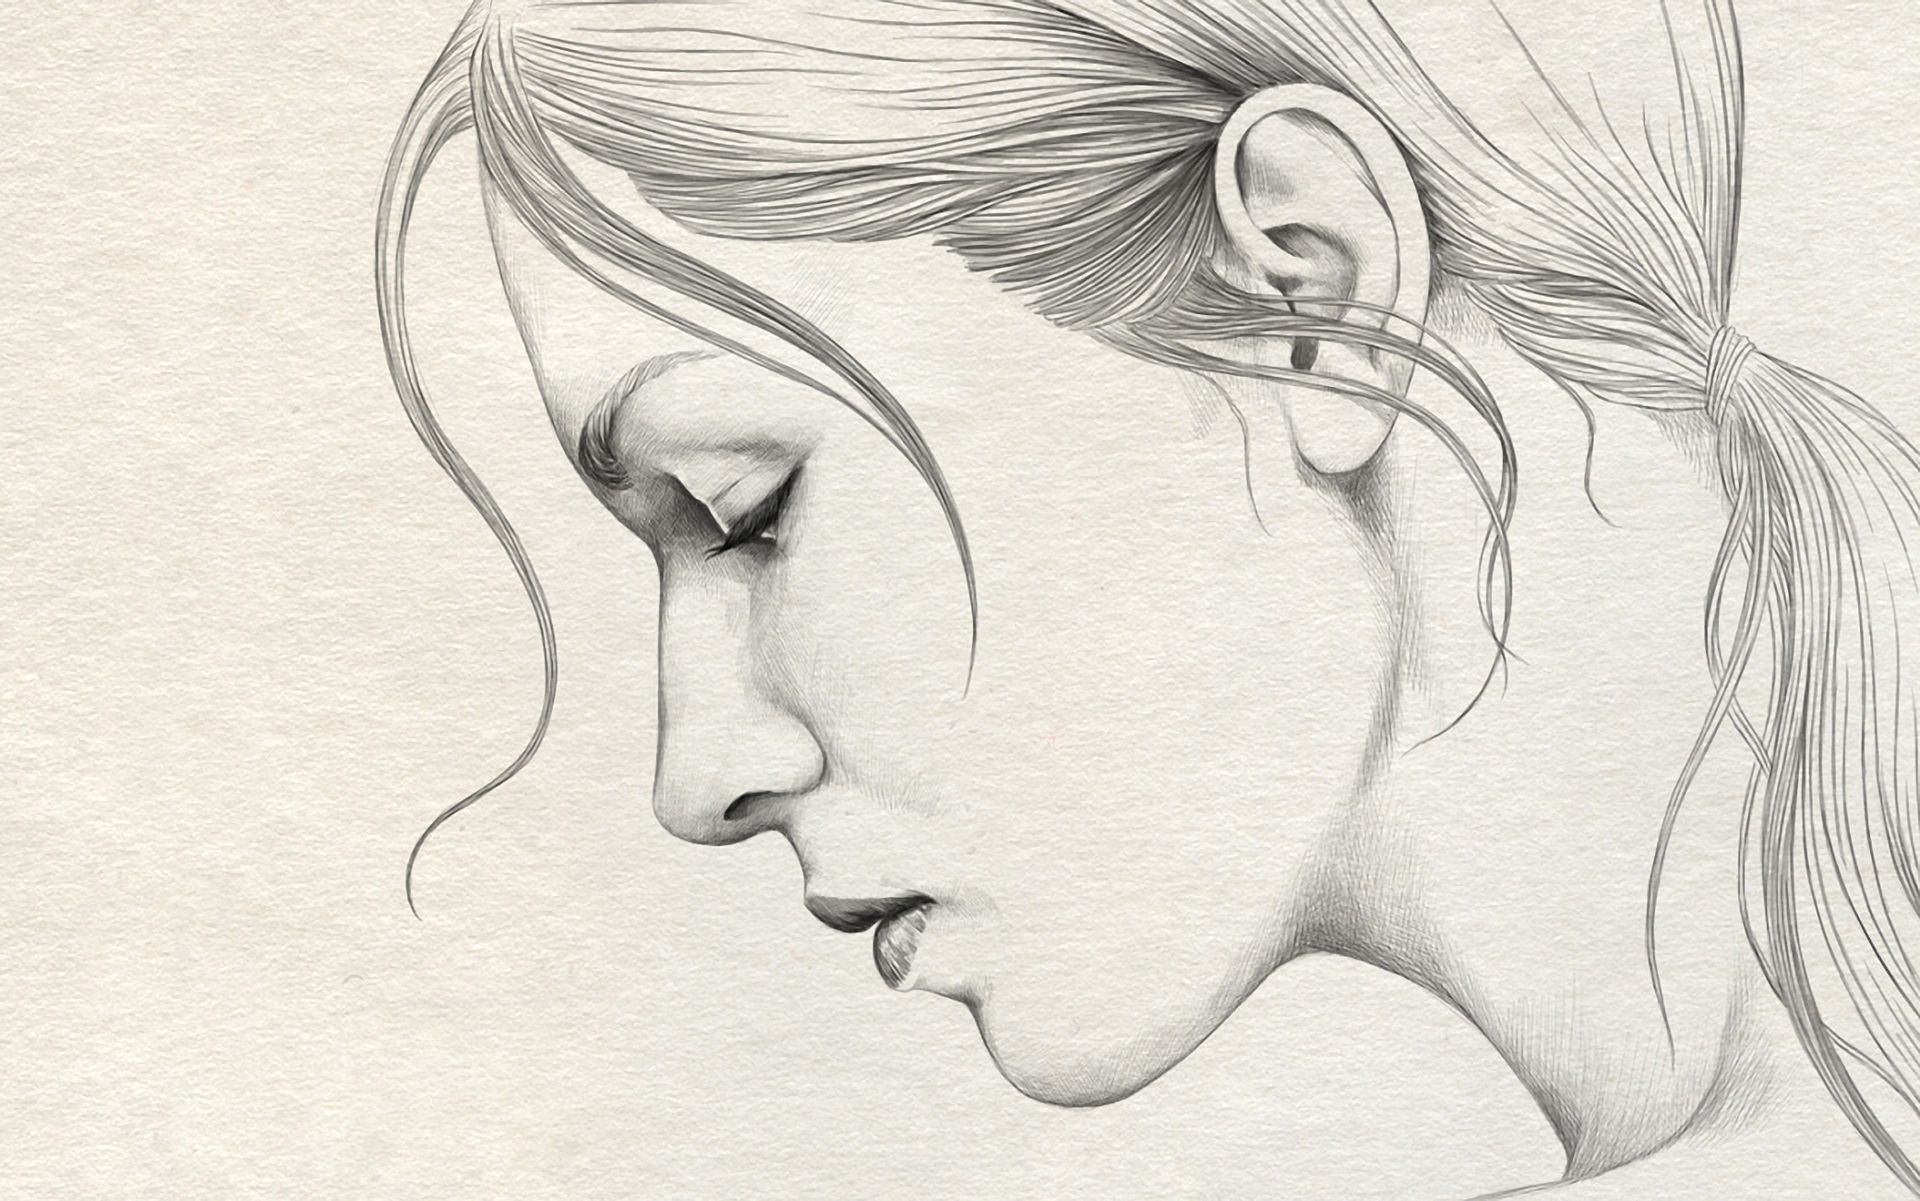 Beatiful sketch drawing woman face profile sketches of girls faces pencil sketches of